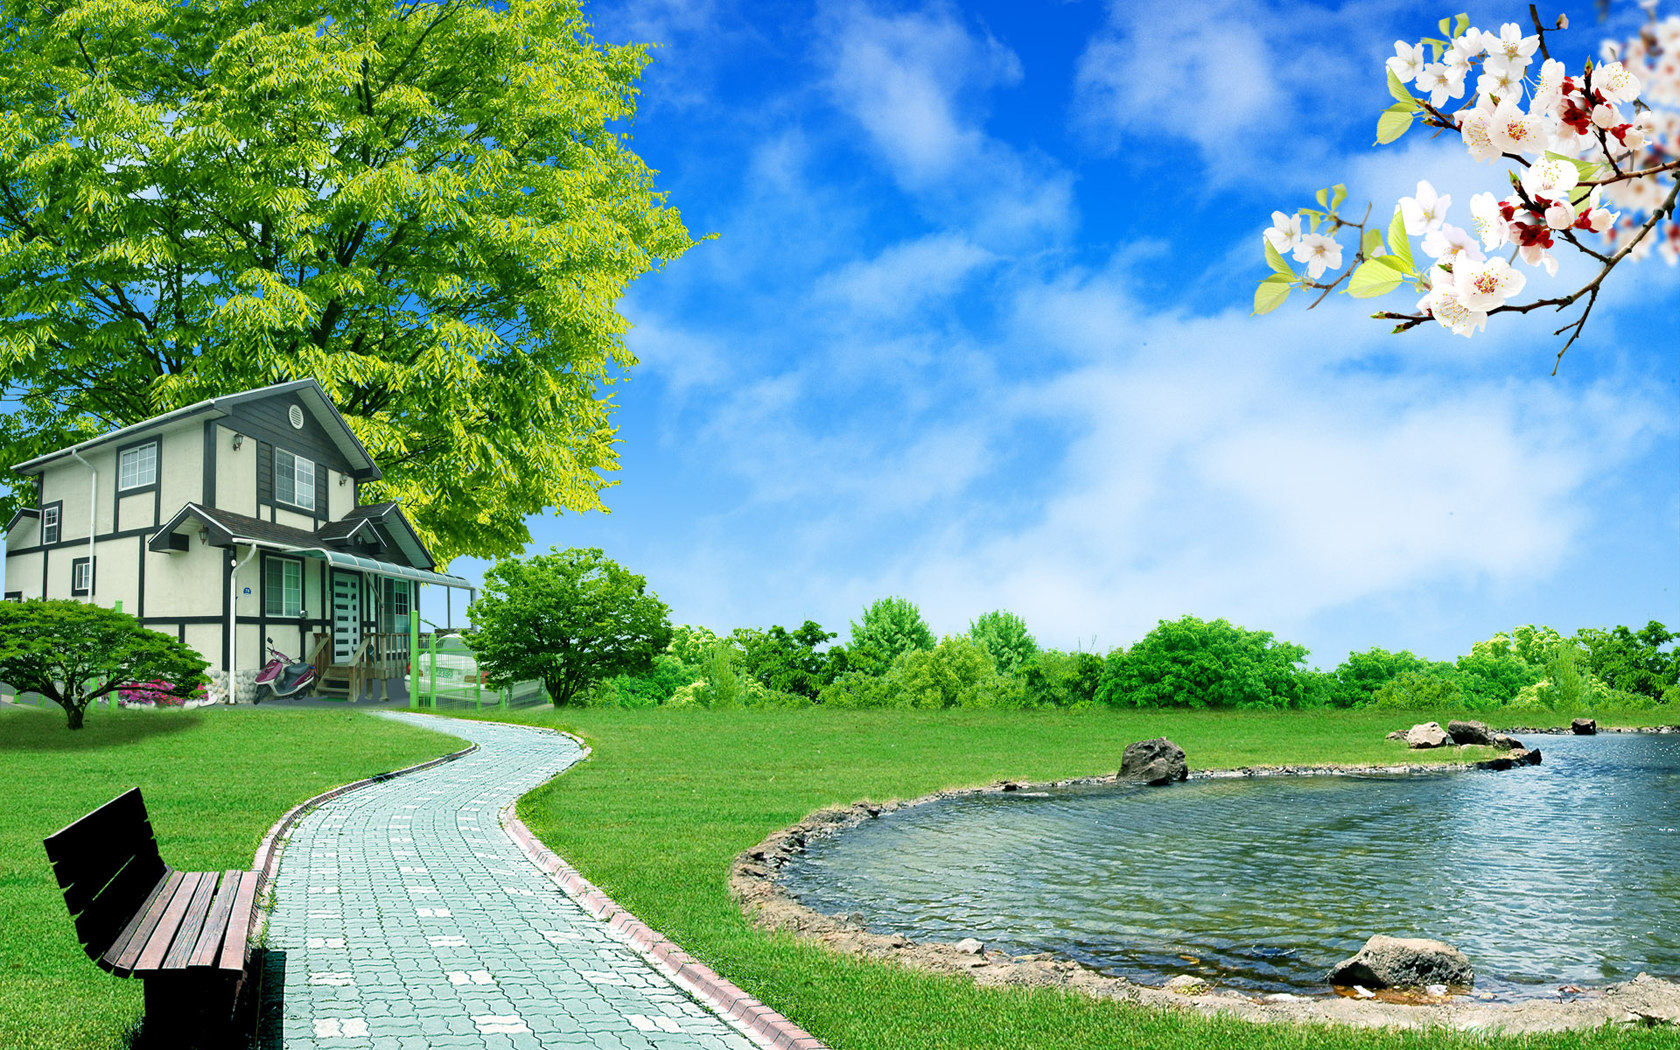 Summer Landscape Wallpaper 22530